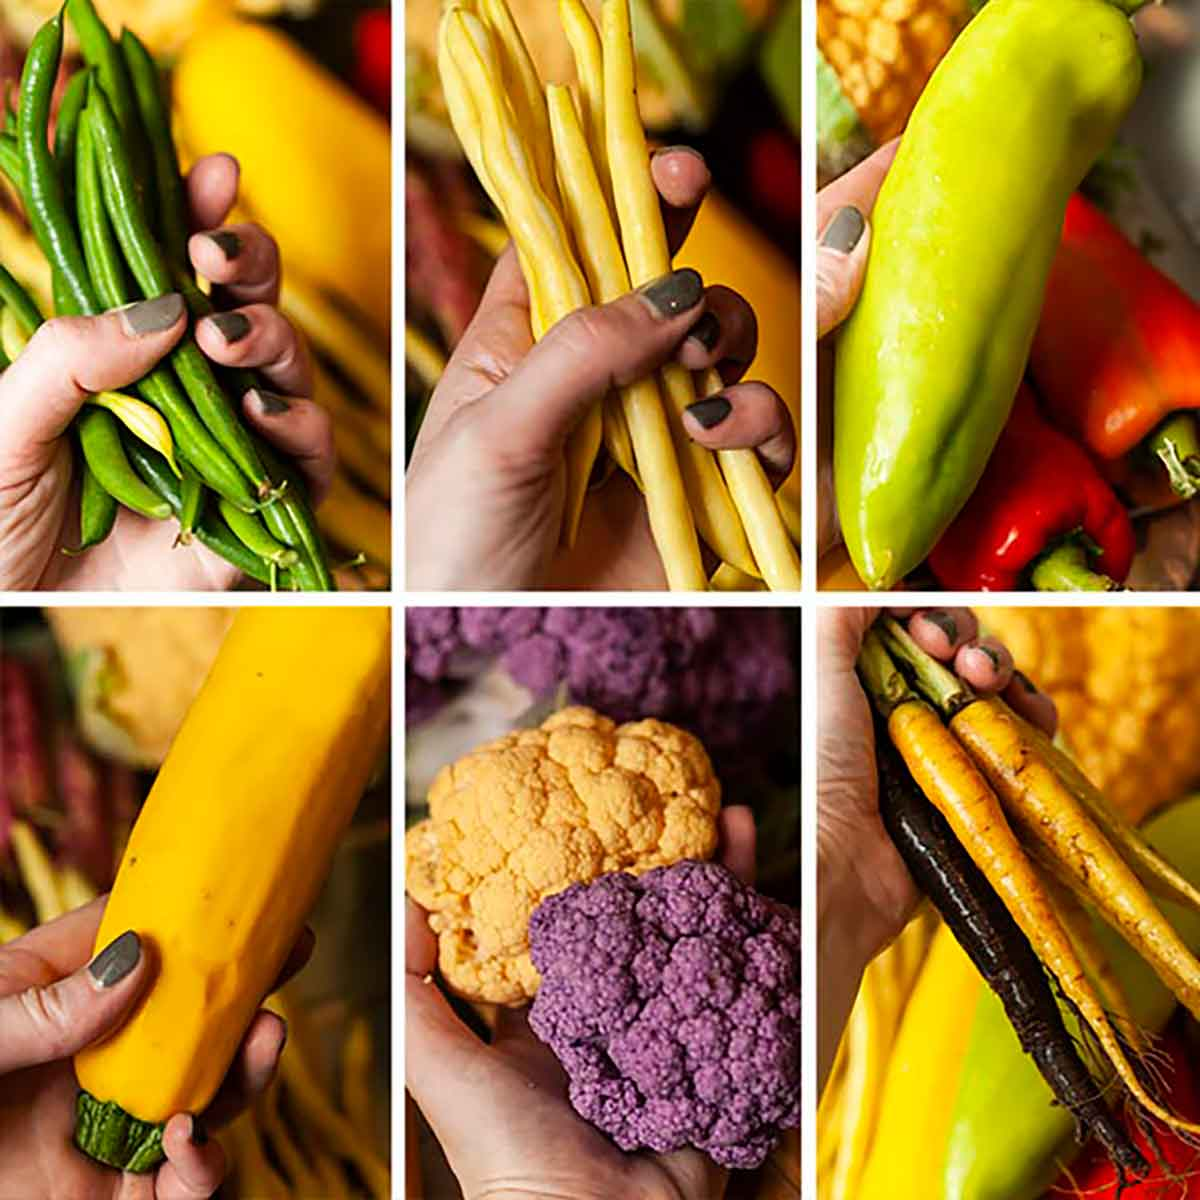 A collage of 6 images of different vegetables.